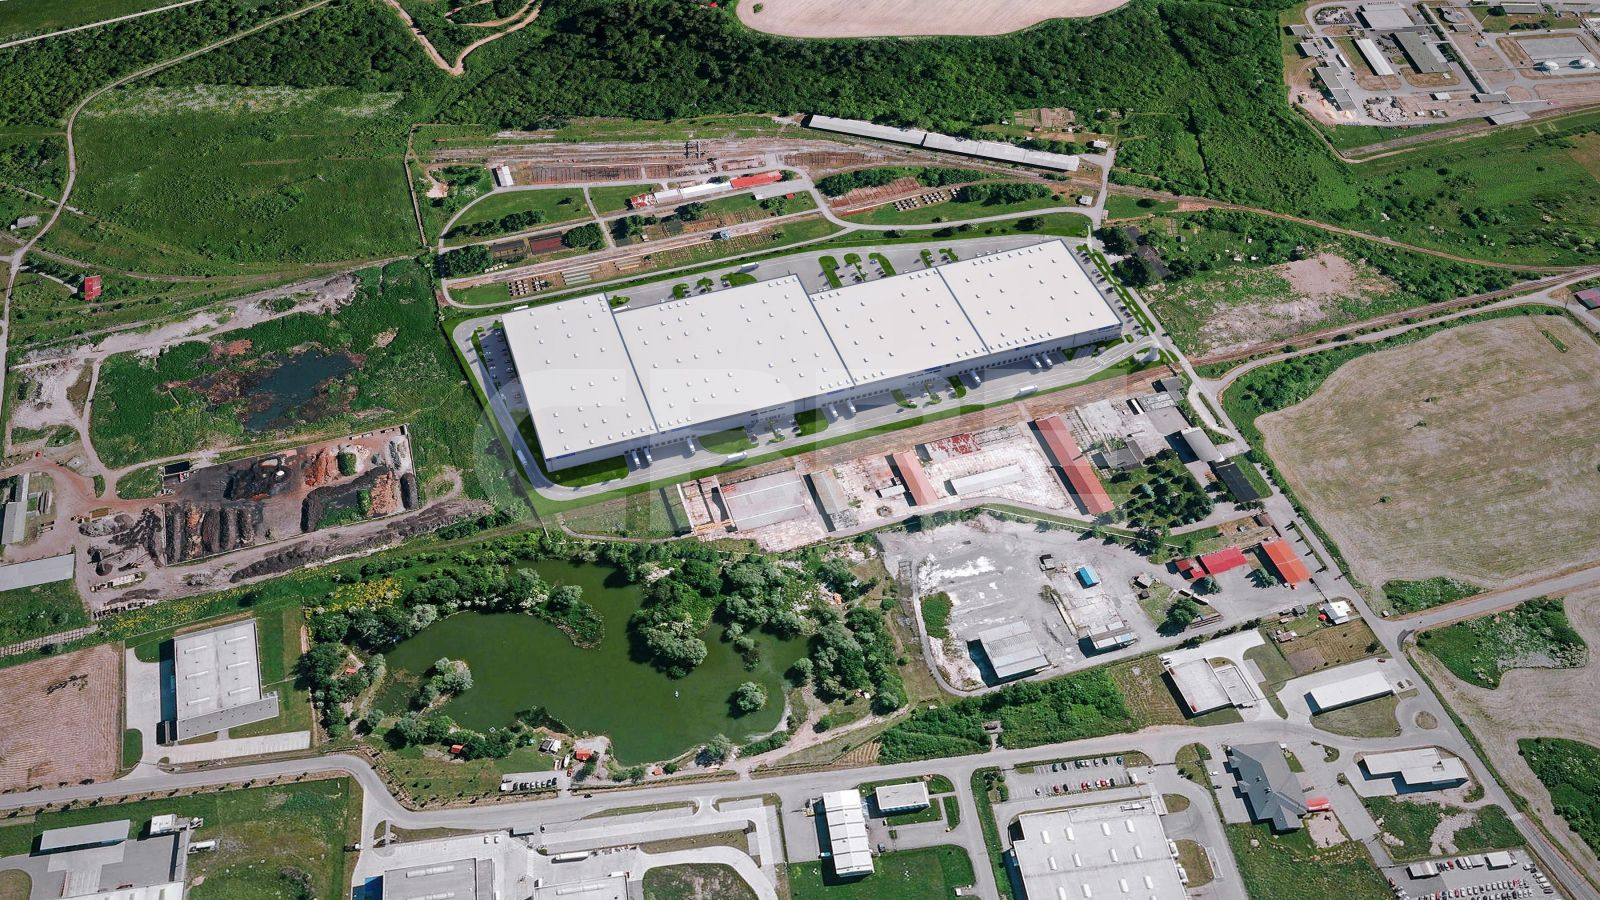 BESICO Park Martin, Žilina Region, Martin | Warehouses for rent or sale by CBRE | 6